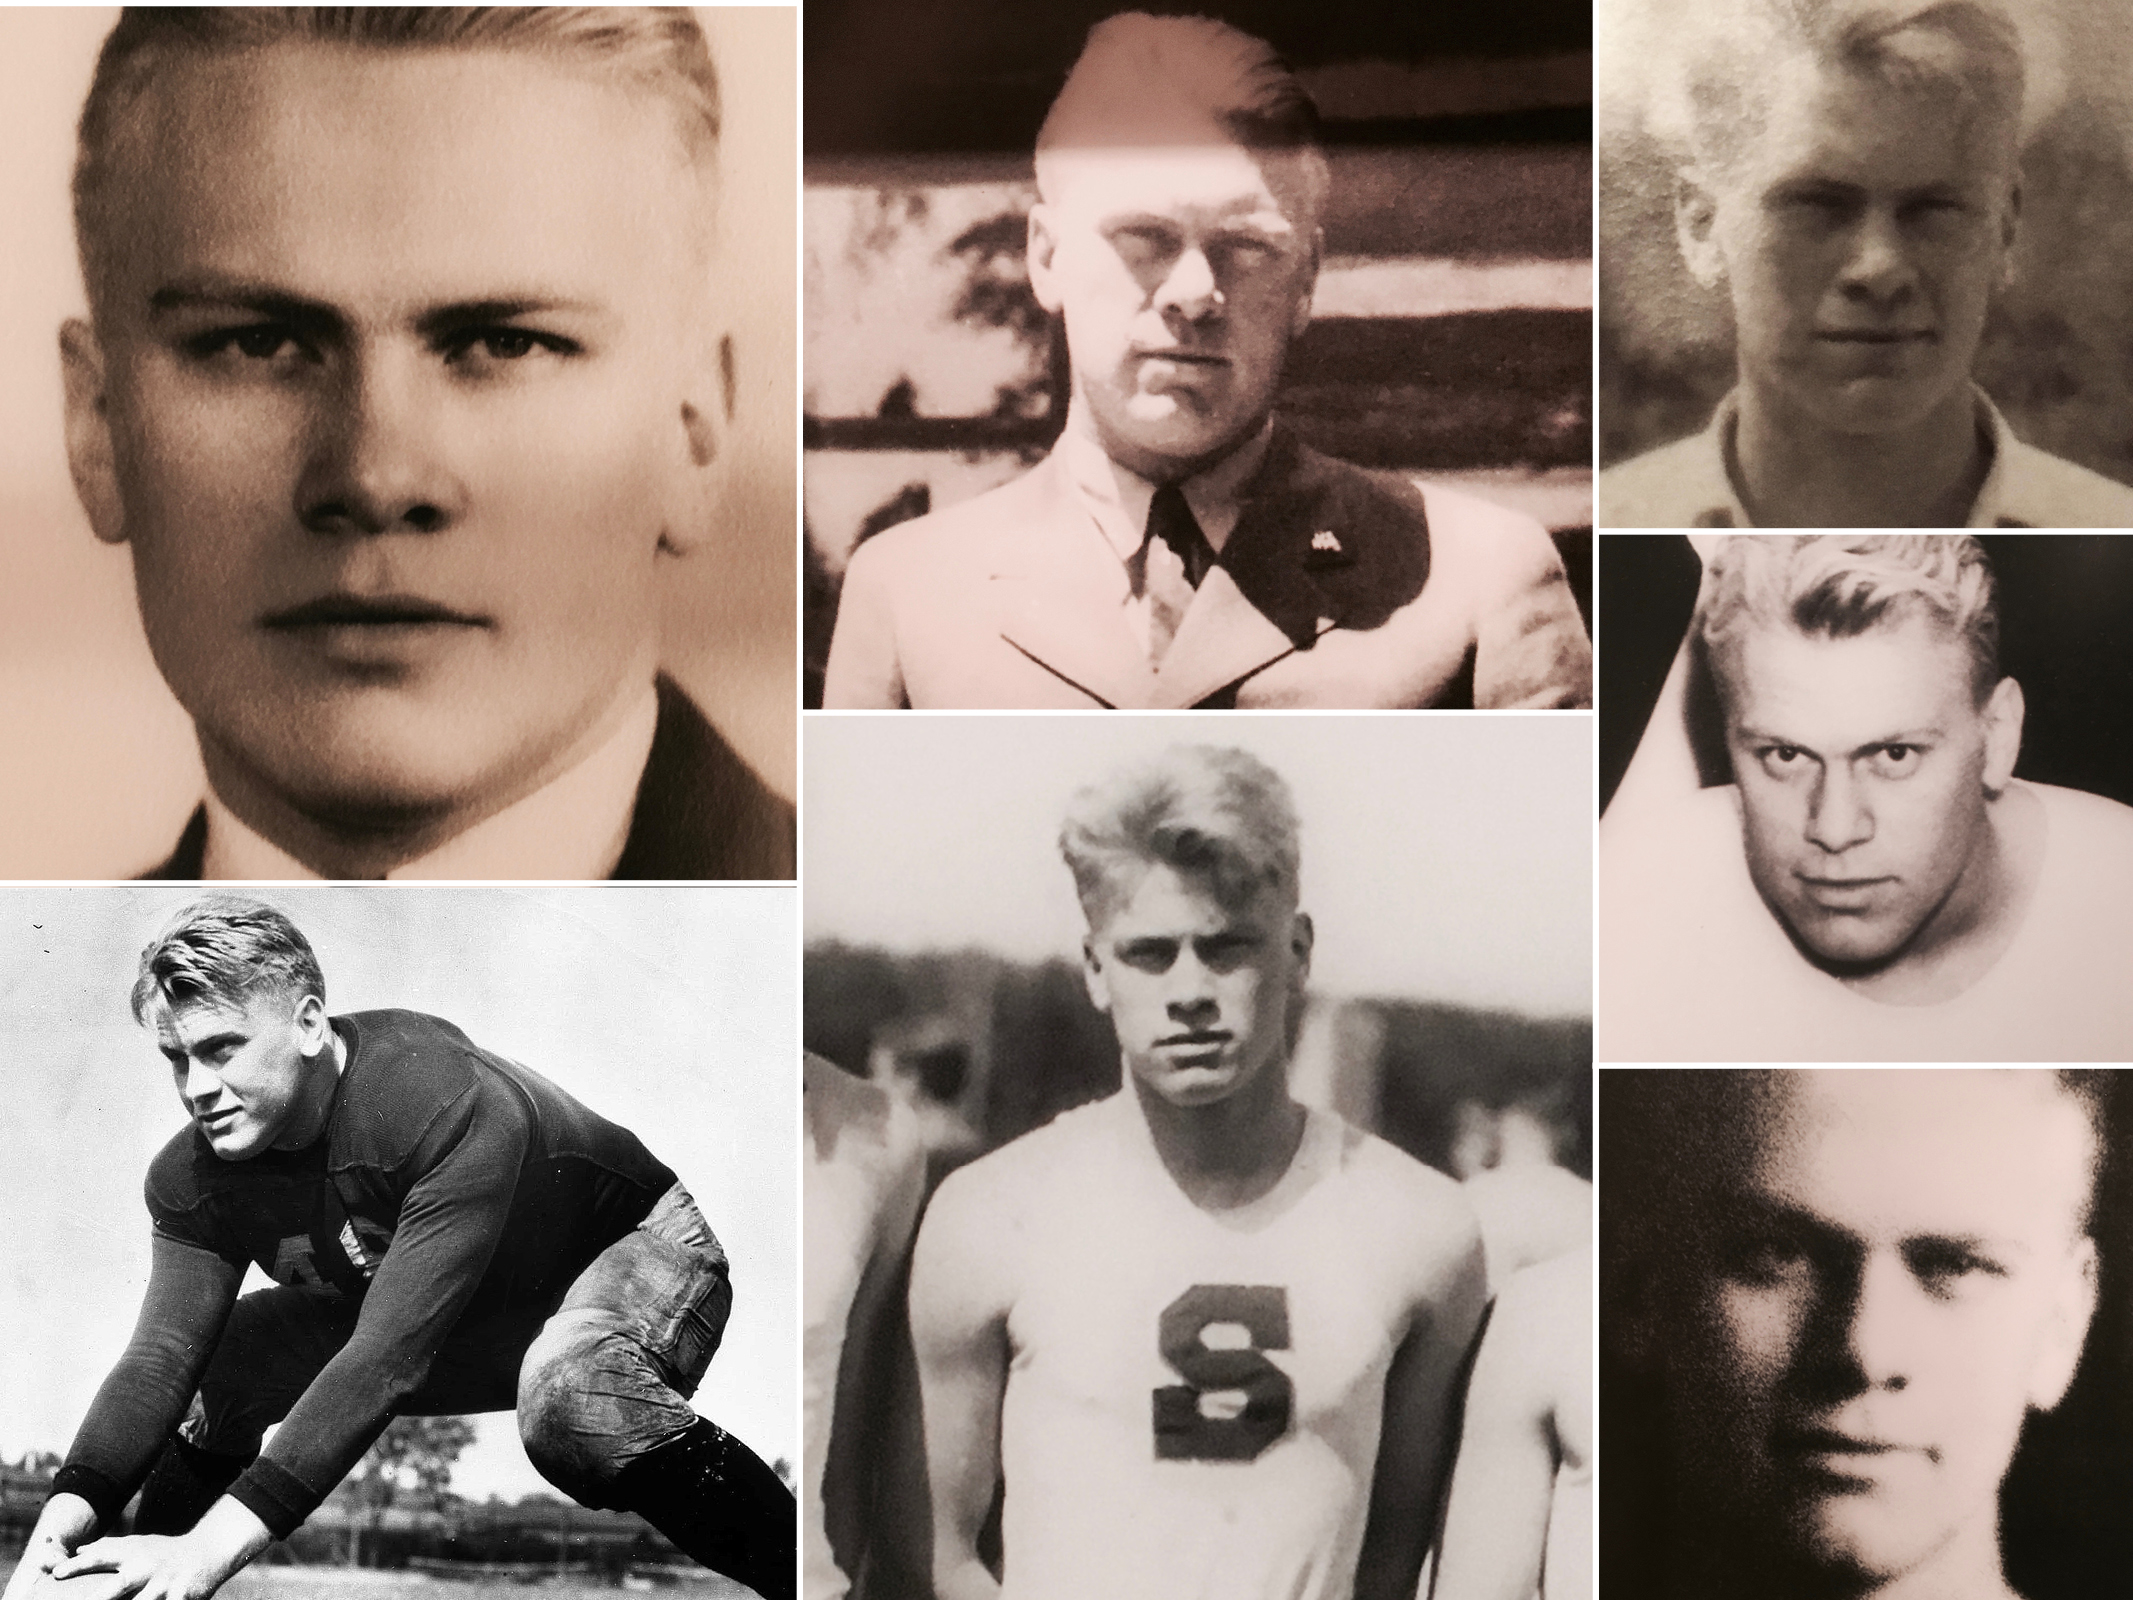 Young Gerald Ford collage